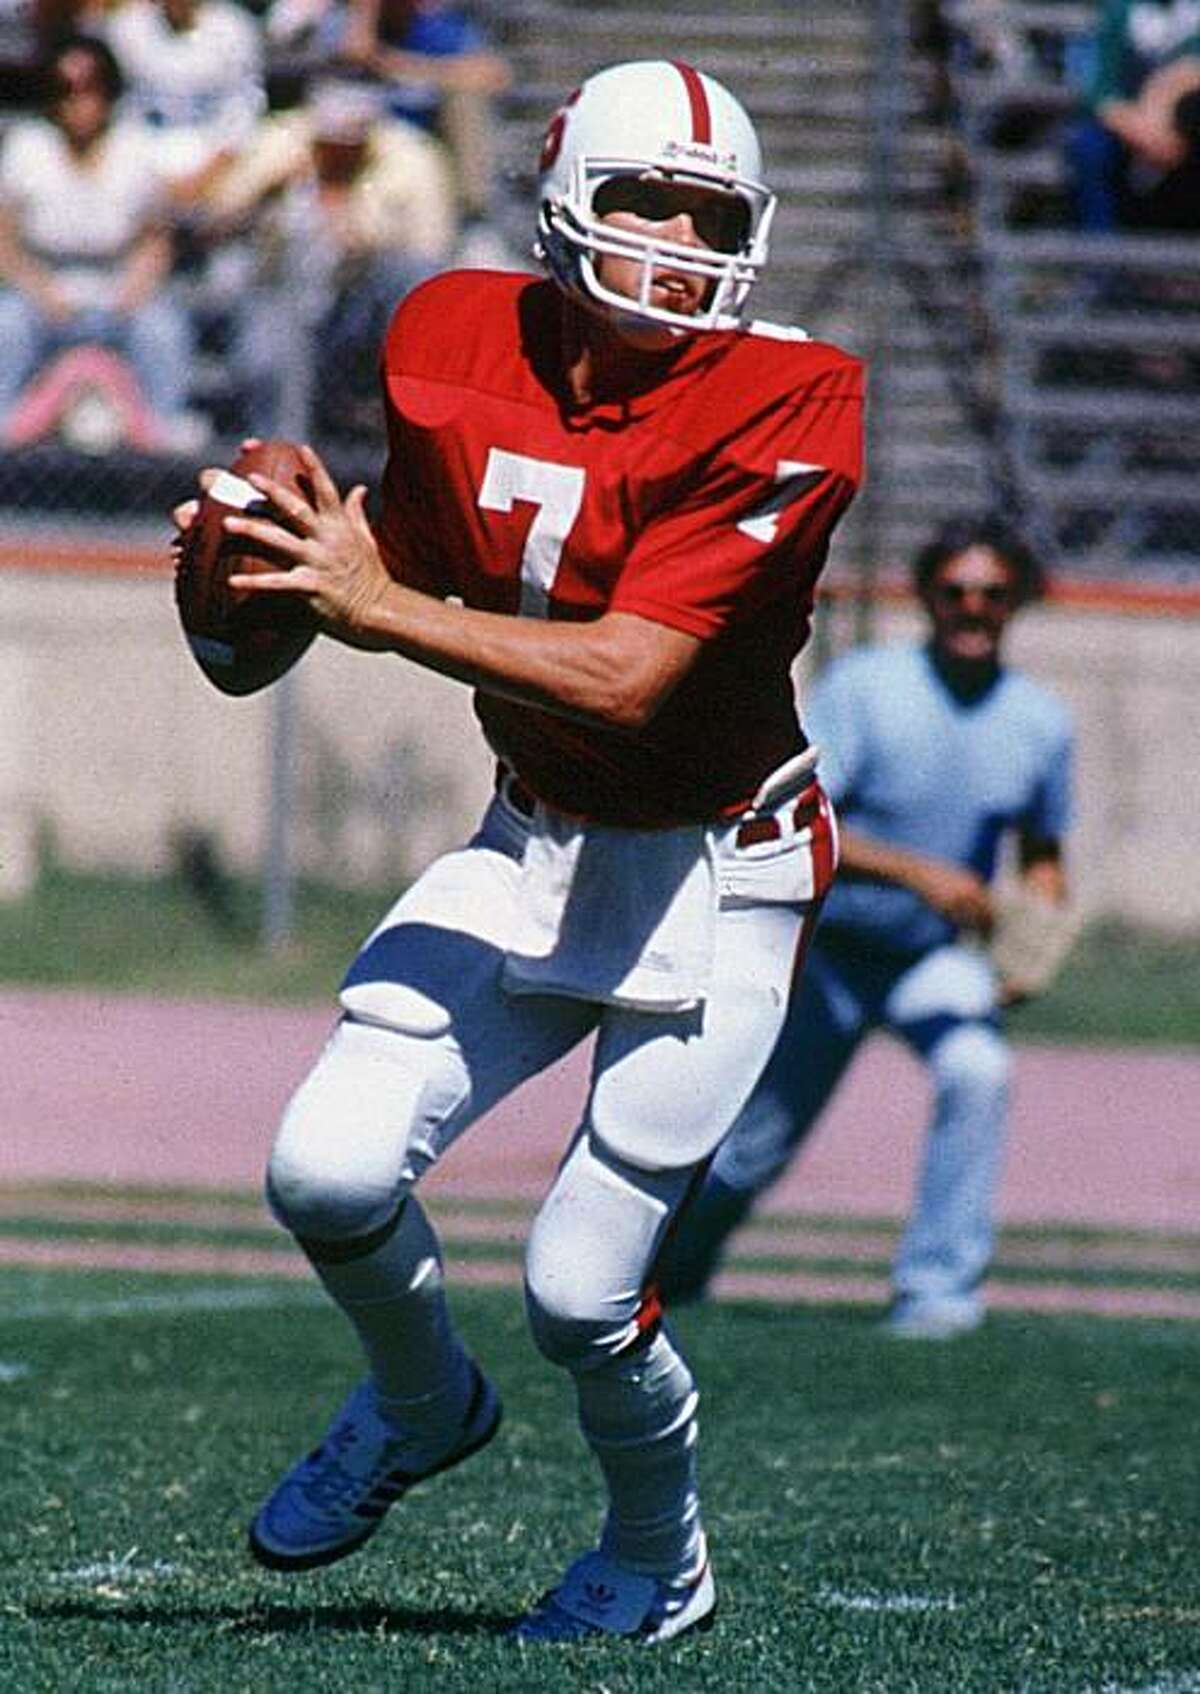 Stanford quarterback John Elway looks to pass in this Oct. 1982 file photo in Palo Alto, Calif. Elway, the master of the late-game rally, has apparently run out of comebacks. Sources who spoke on condition of anonymity Friday, April 23, 1999, told The Associated Press the 38-year-old Elway has told family and friends that he won't be back for the 1999 season.